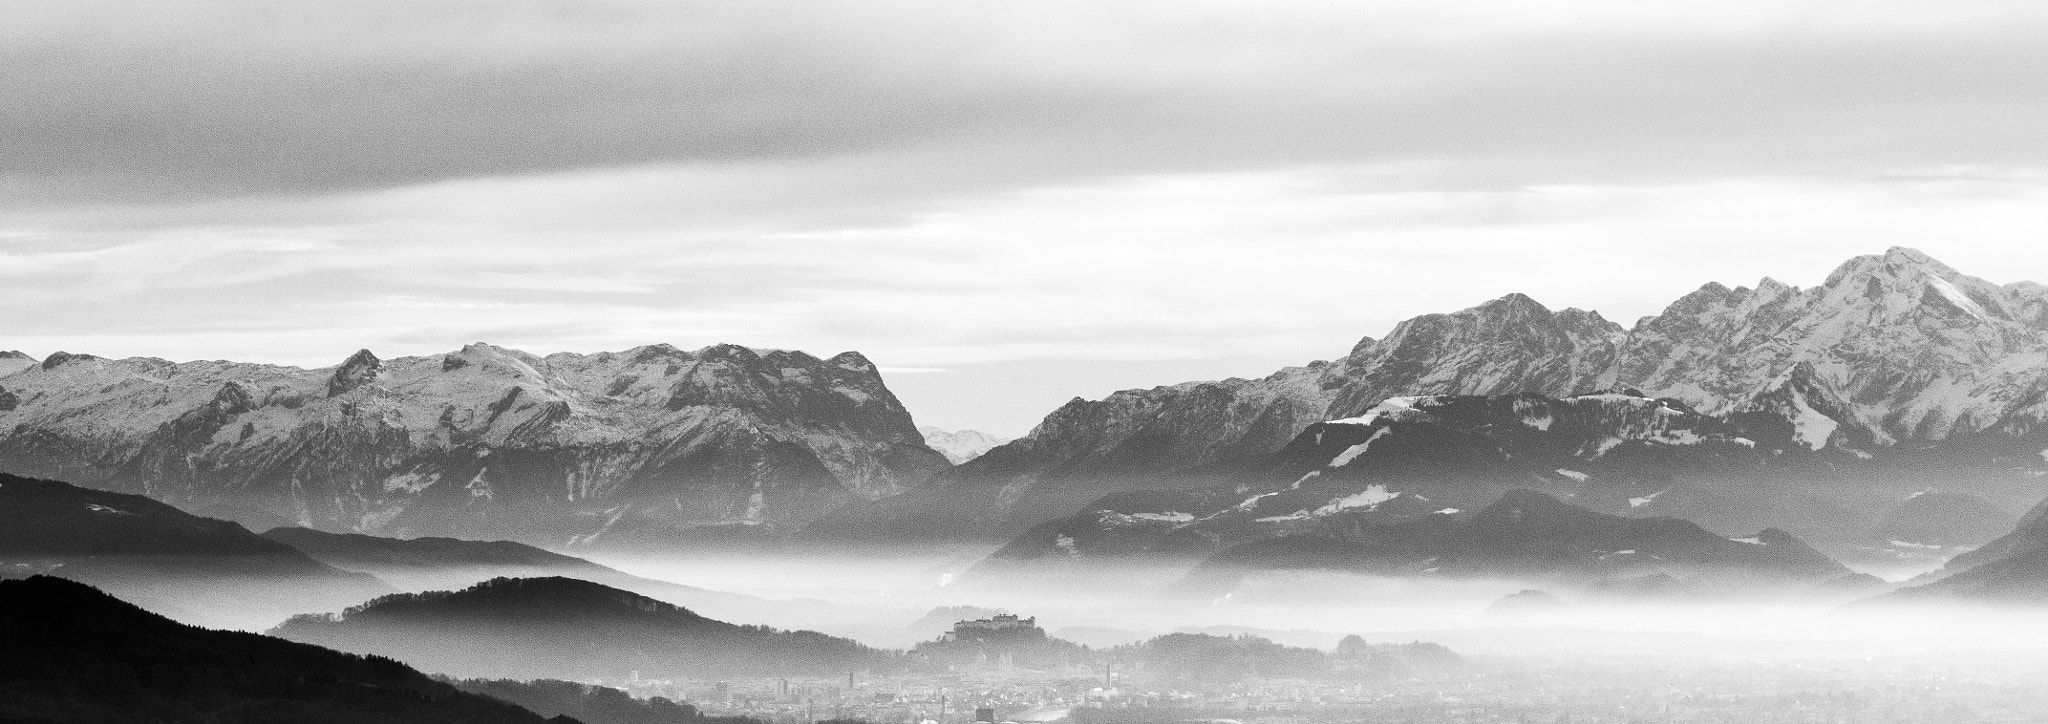 Photograph Salzbourg - Alpes - Photo 8 by Francois-Xavier Thiebaud on 500px